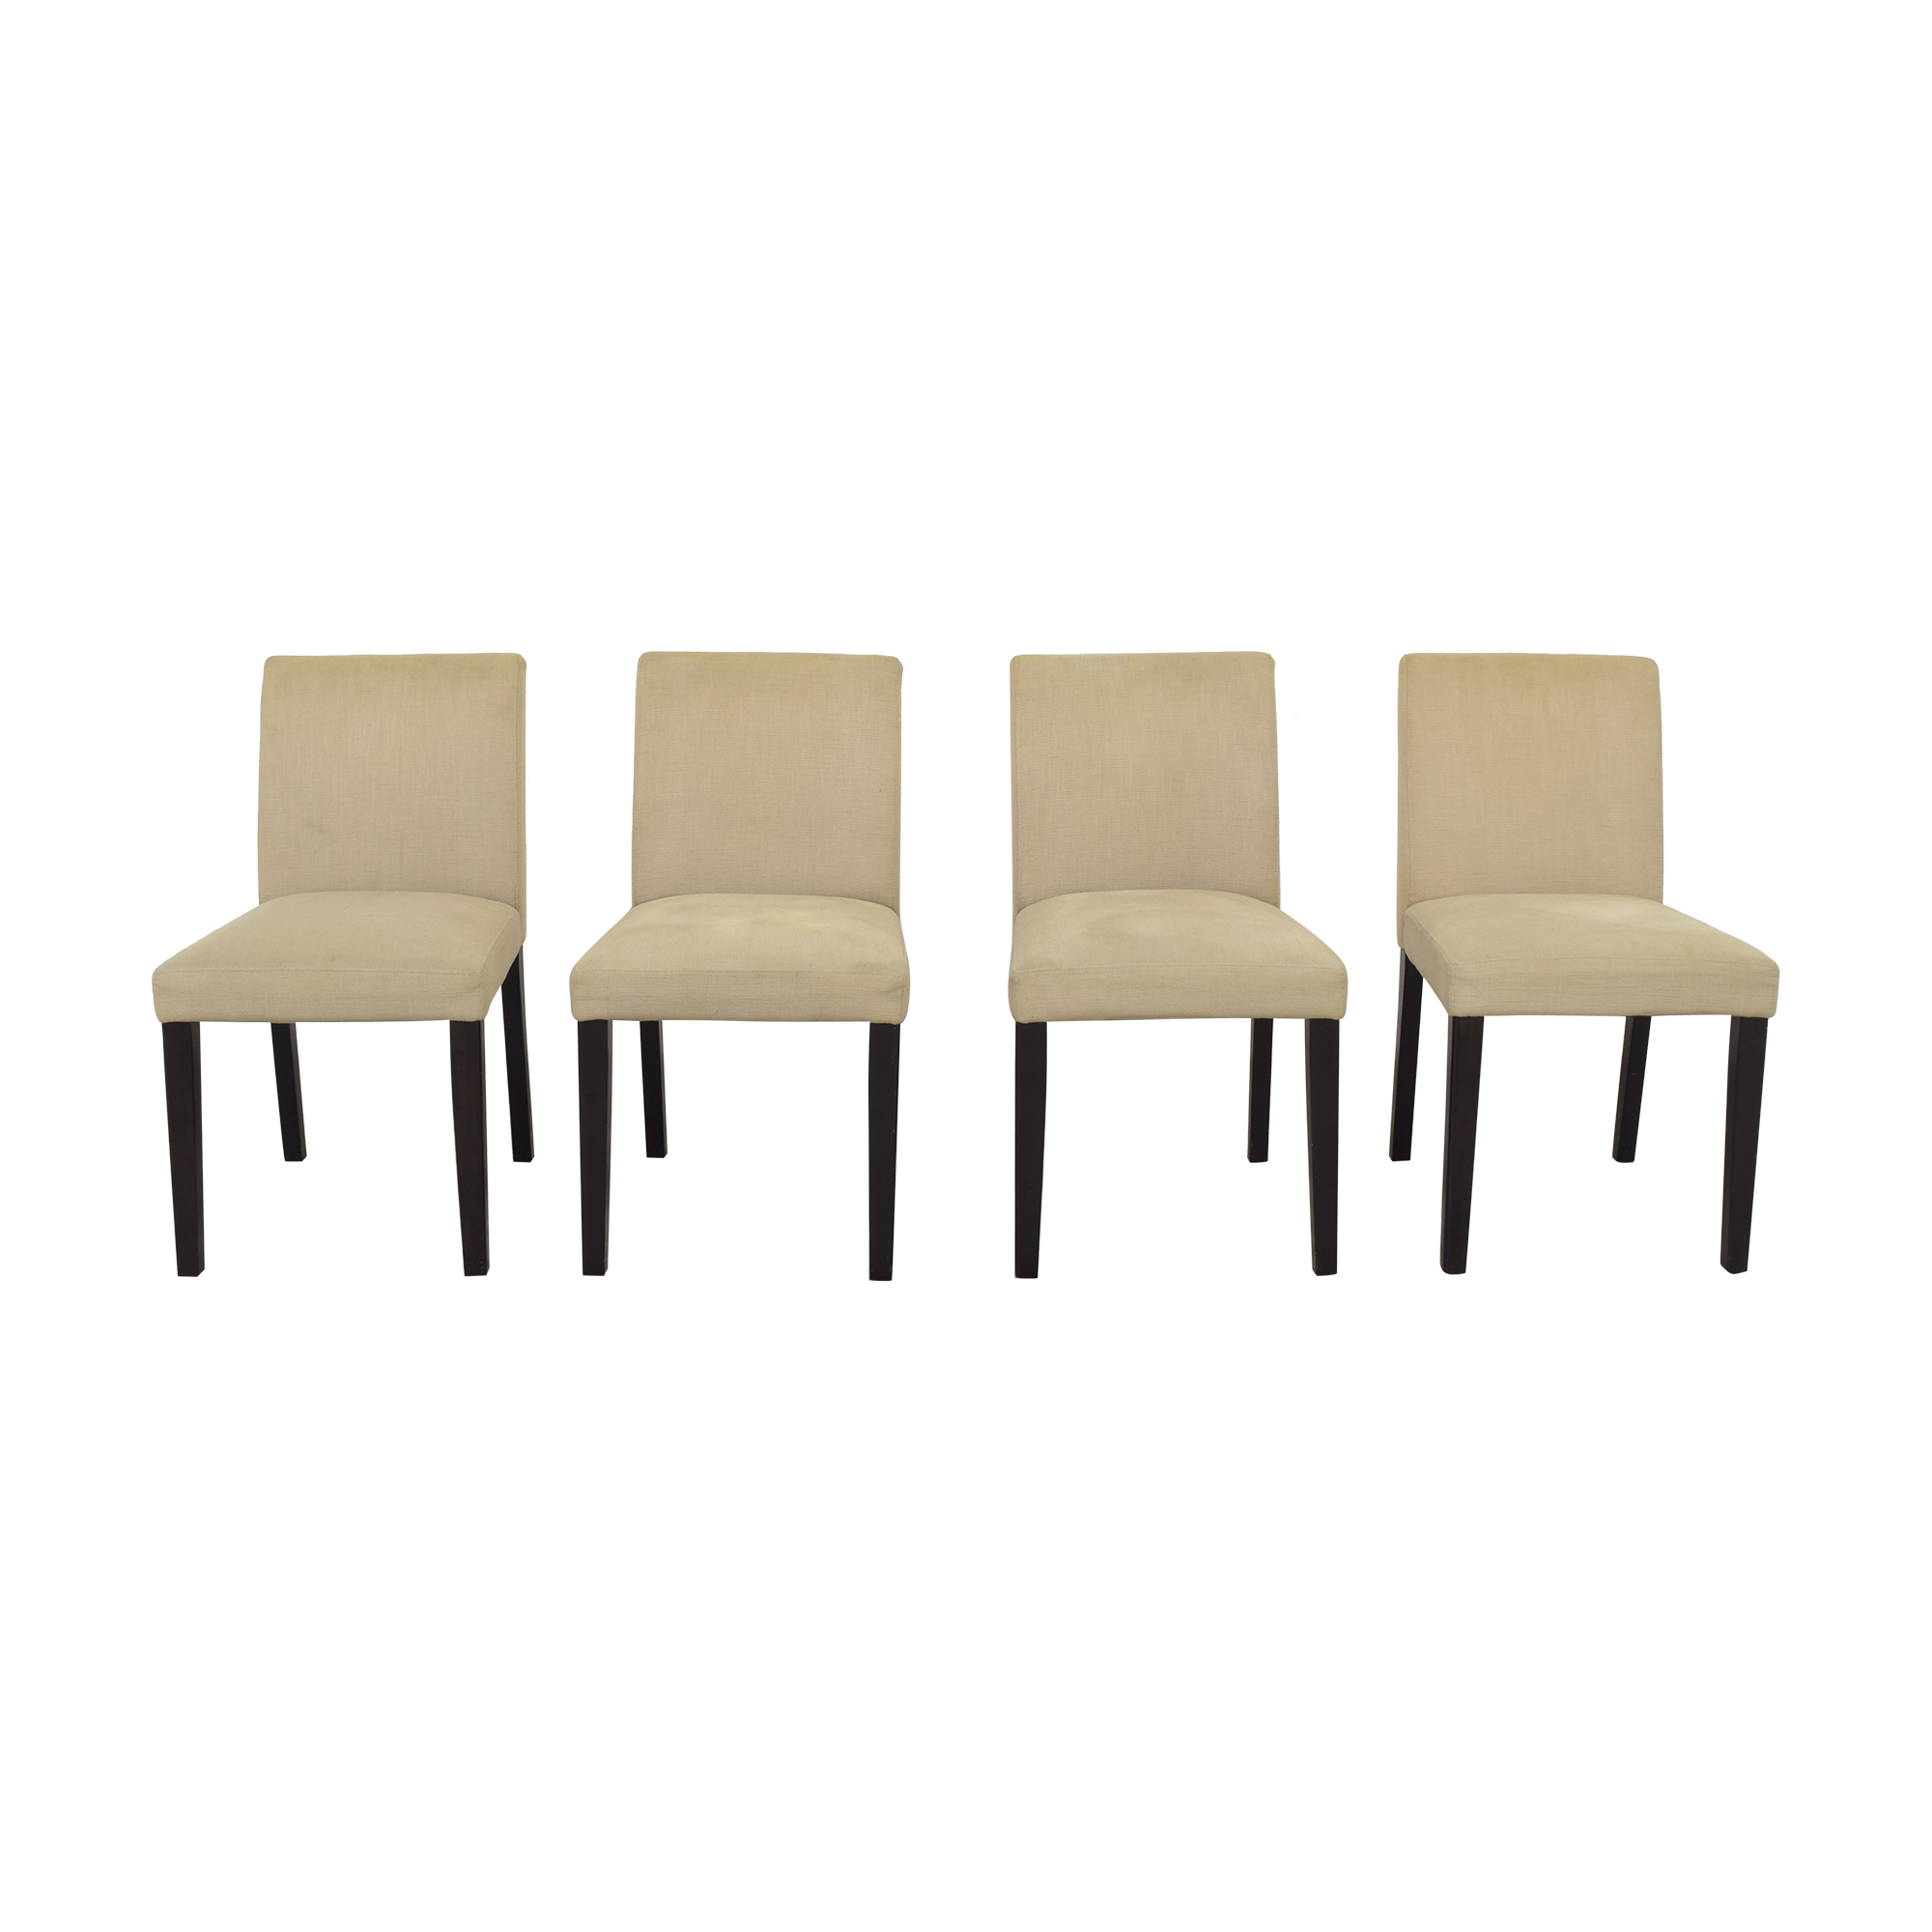 buy West Elm West Elm Porter Dining Chairs online